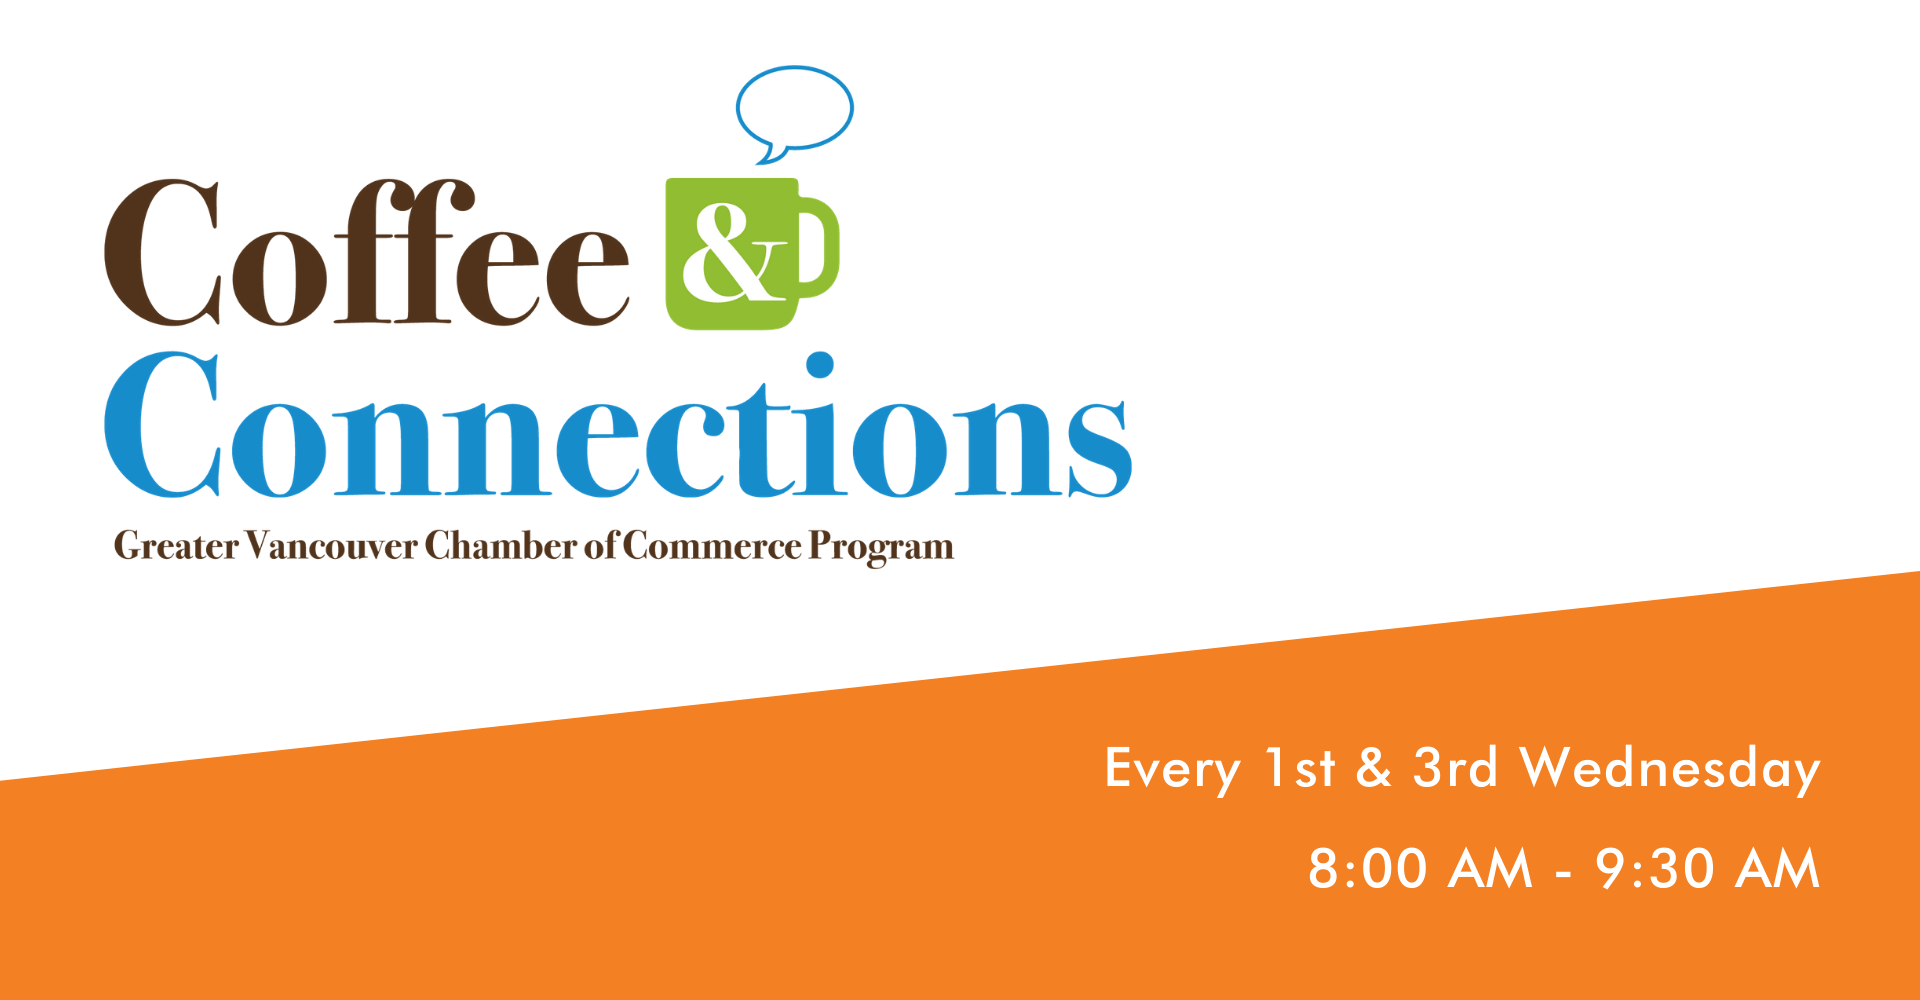 A Unique Virtual Experience to Connect with Business Professionals in Clark County  Connecting with local business professionals is simple with the Chamber's newest program, Coffee & Connections! Through this virtual meeting space, attendees can connect over videochat with different professionals around the region spaced out at different tables during the program. In this structured setting, Executive Directors to Emerging Professionals are encouraged to participate in virtual, small-group interactions, sharing with others the mission of their organization, upcoming events, and exchanging information to connect further offline.